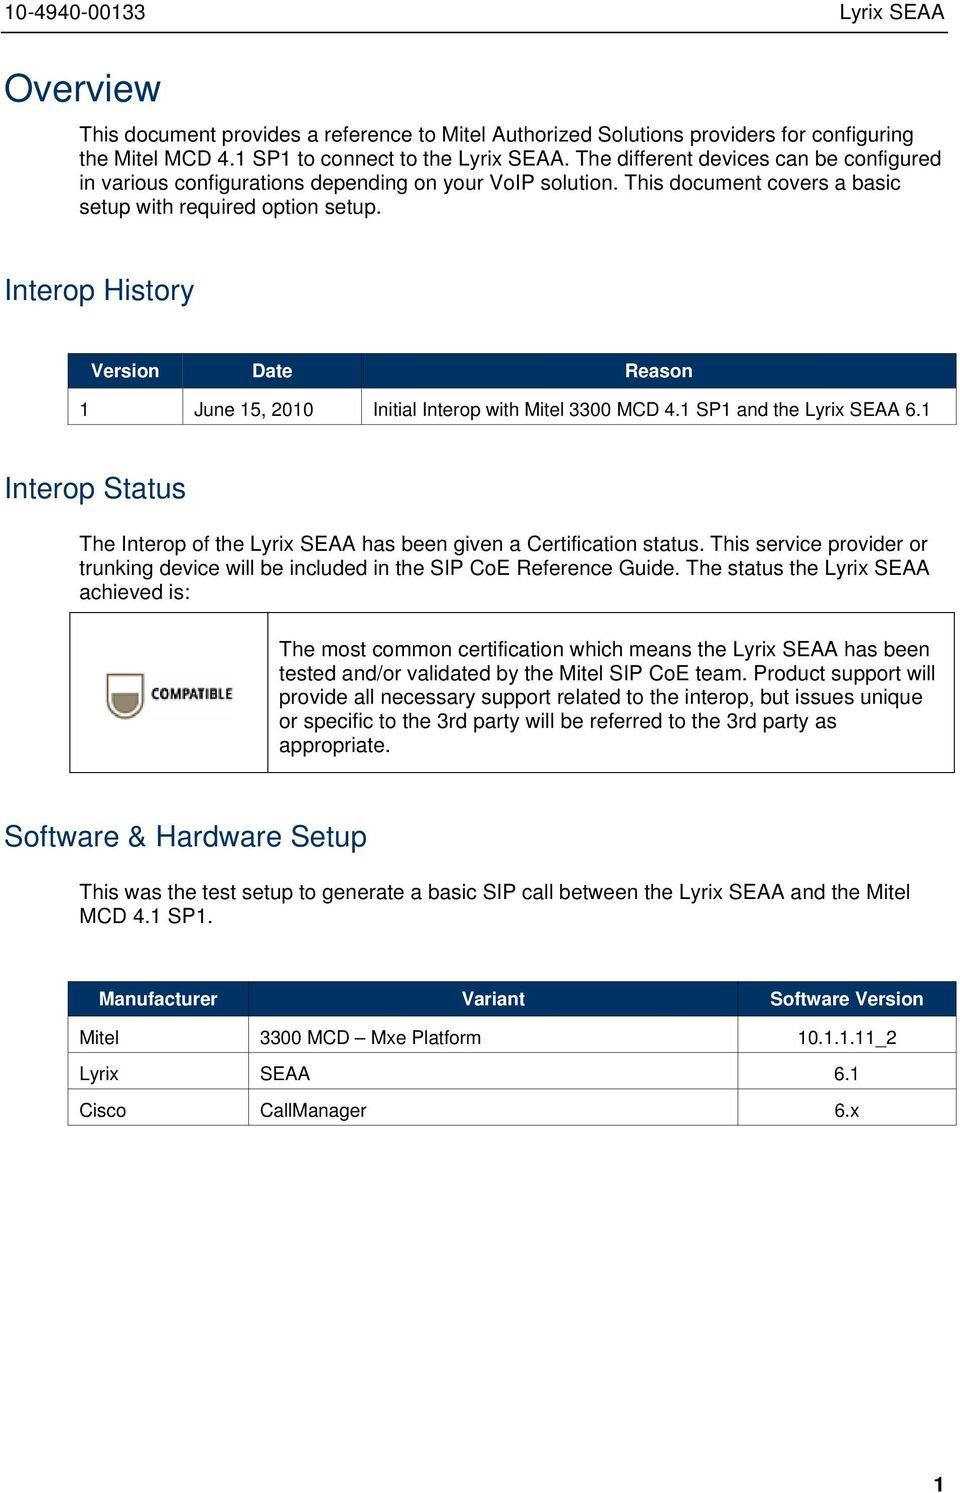 Interop History Version Date Reason 1 June 15, 2010 Initial Interop with Mitel 3300 MCD 4.1 SP1 and the Lyrix SEAA 6.